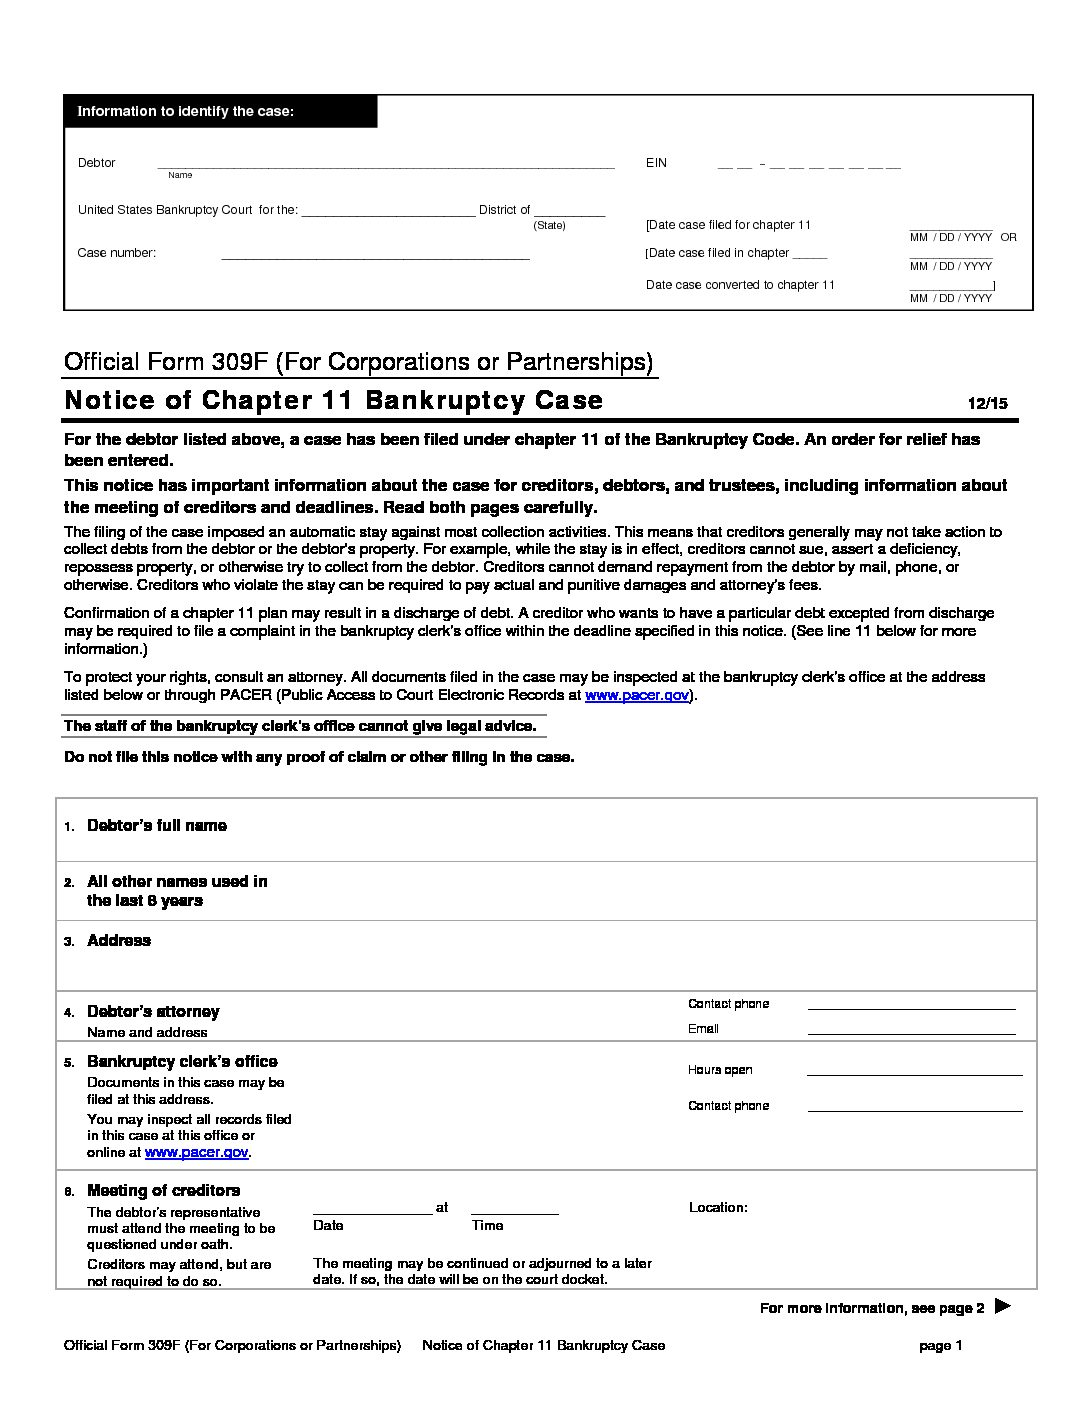 B 309F Notice of Chapter 11 Bankruptcy Case (For Corporations or Partnerships) form preview